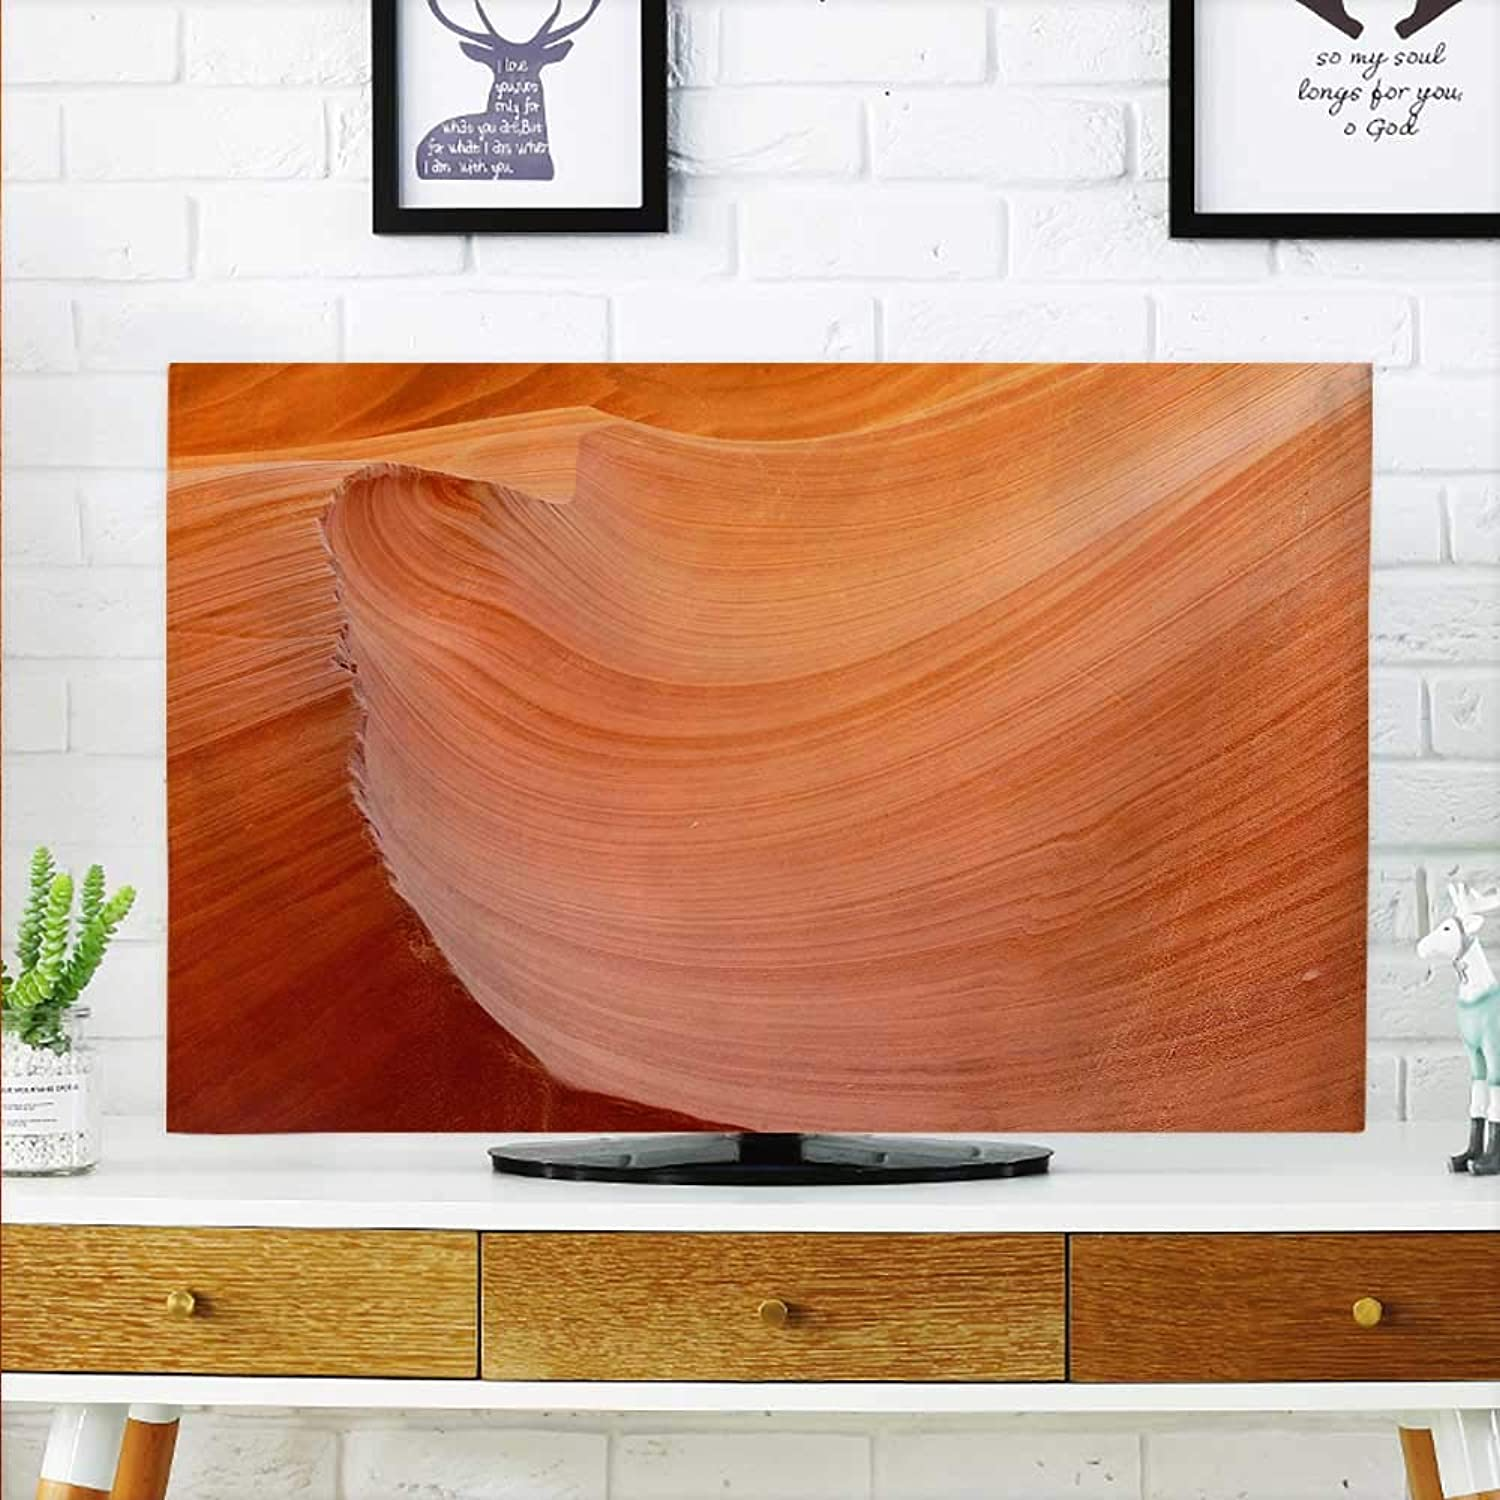 Aolankaili Cover for Wall Mount tv Rich and colorful Sand Cover Mount tv W35 x H55 INCH TV 60